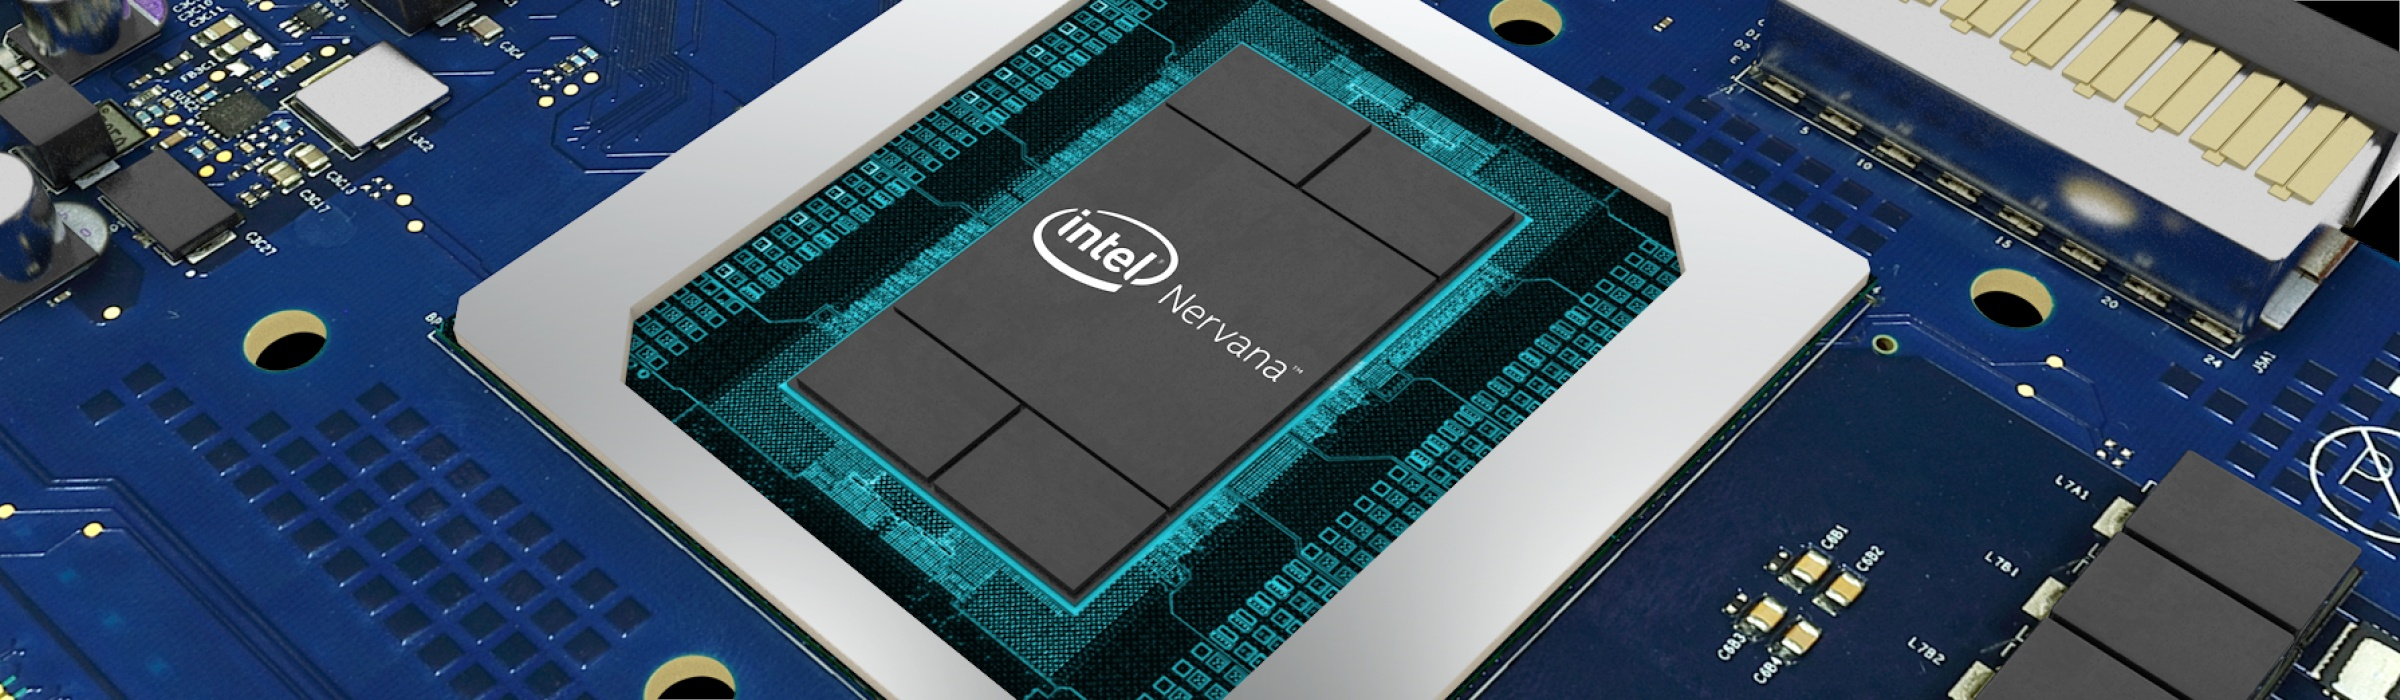 Intel Nervana Chip - Artificial Intelligence